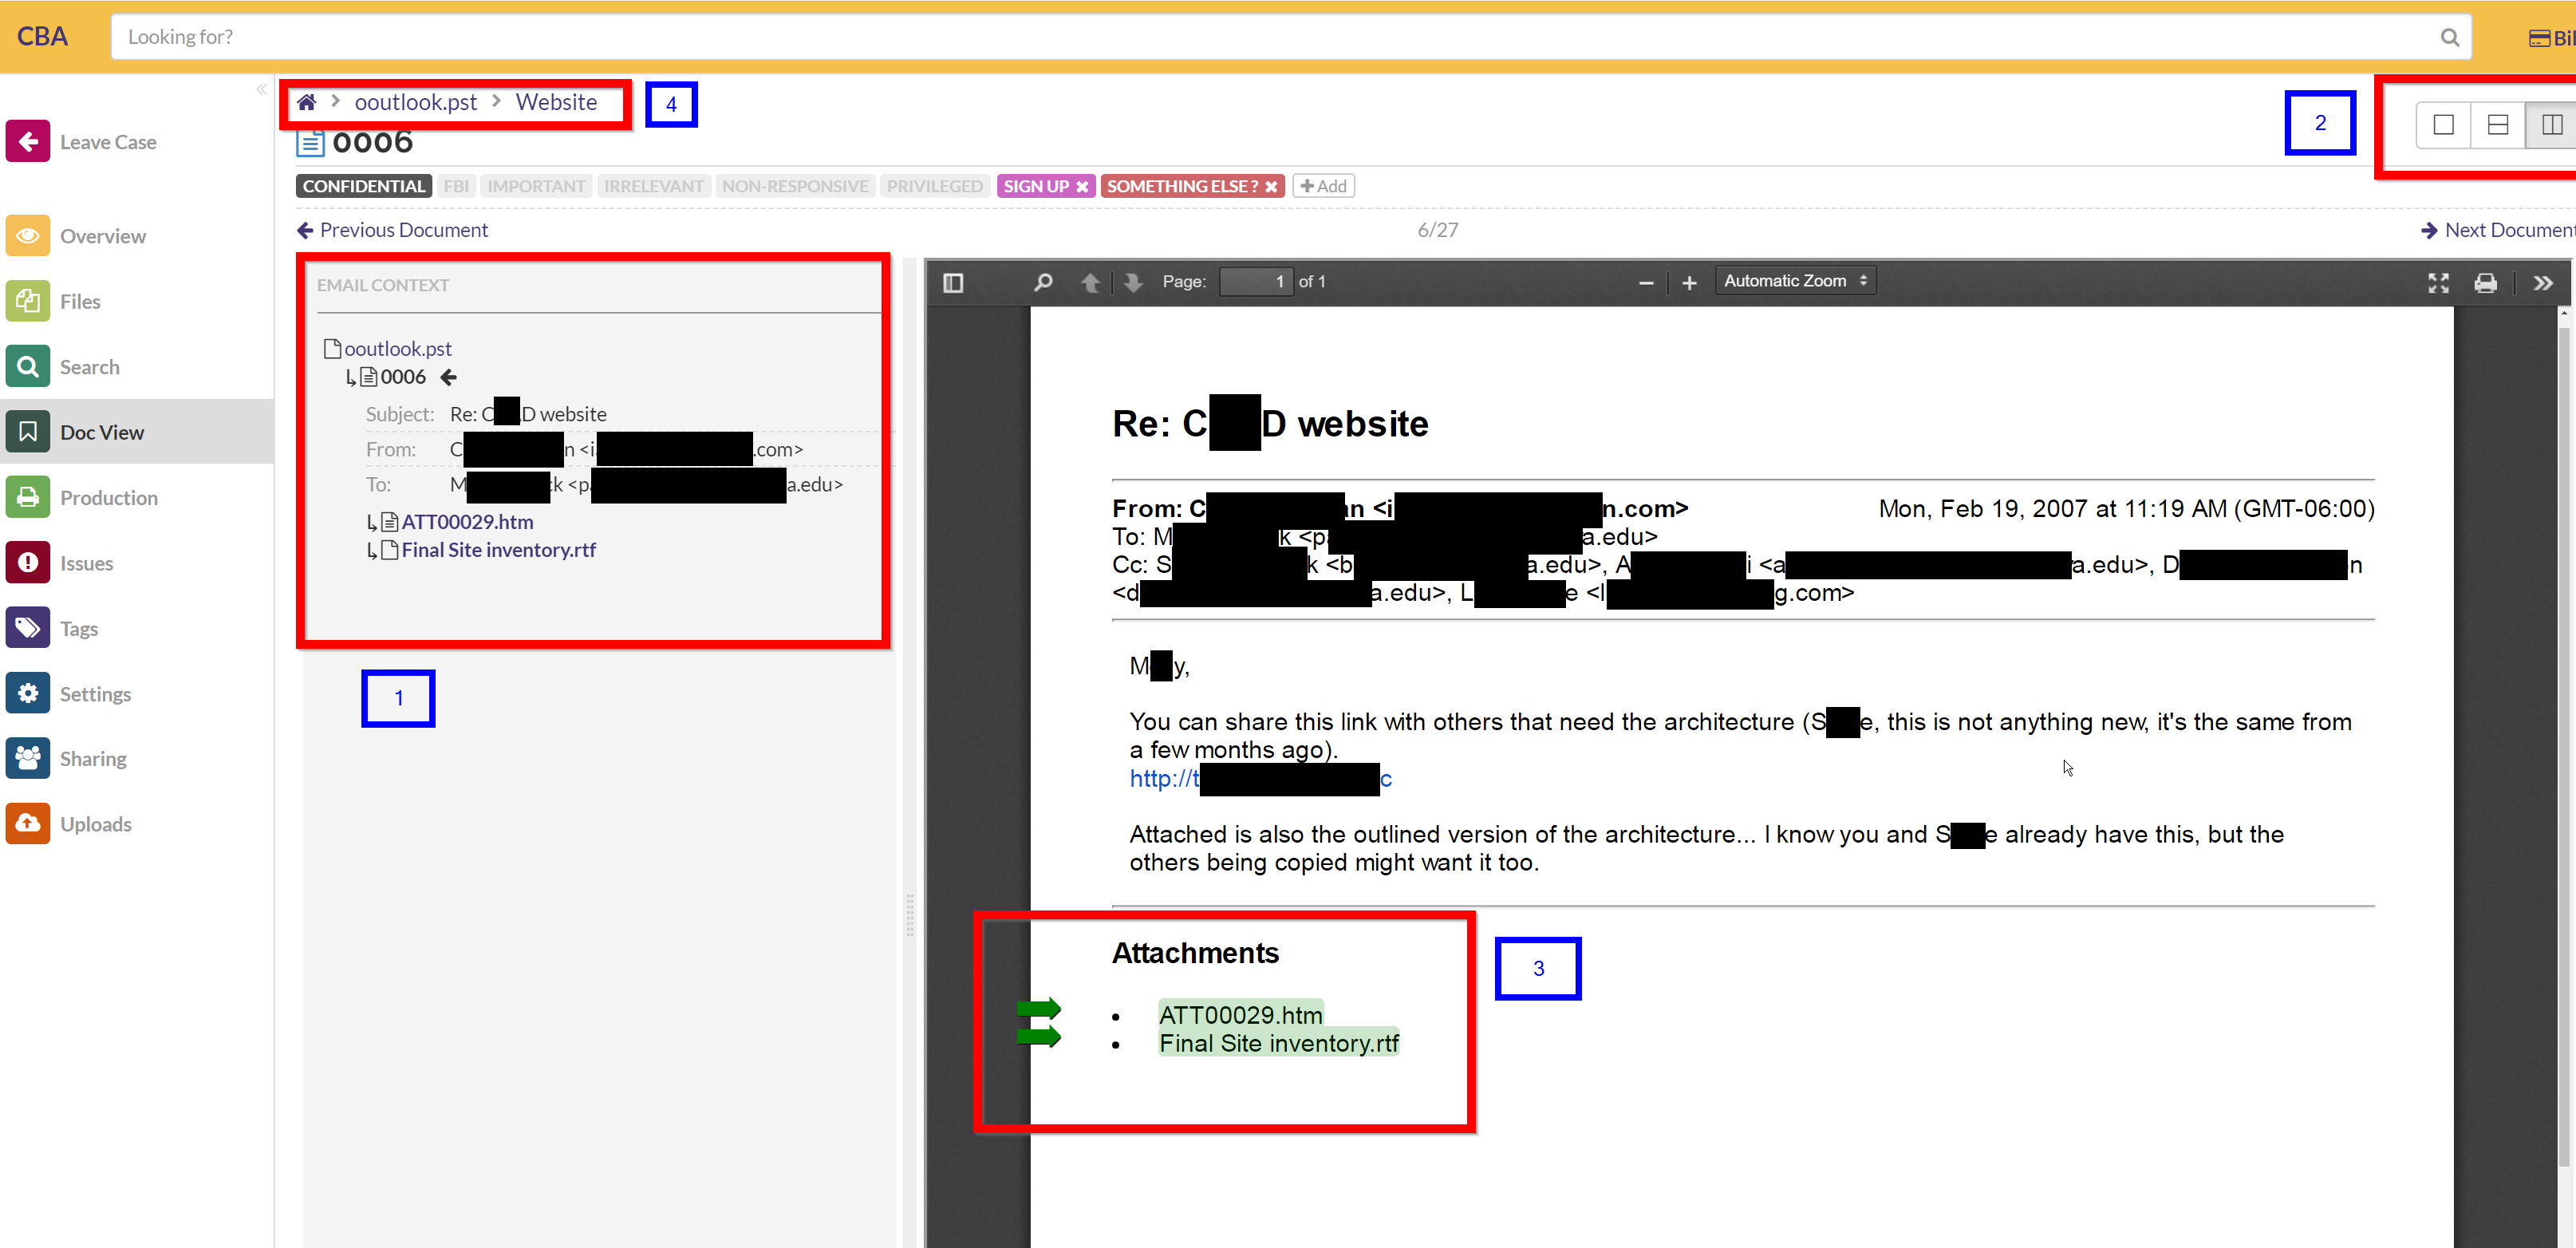 Where to find email context